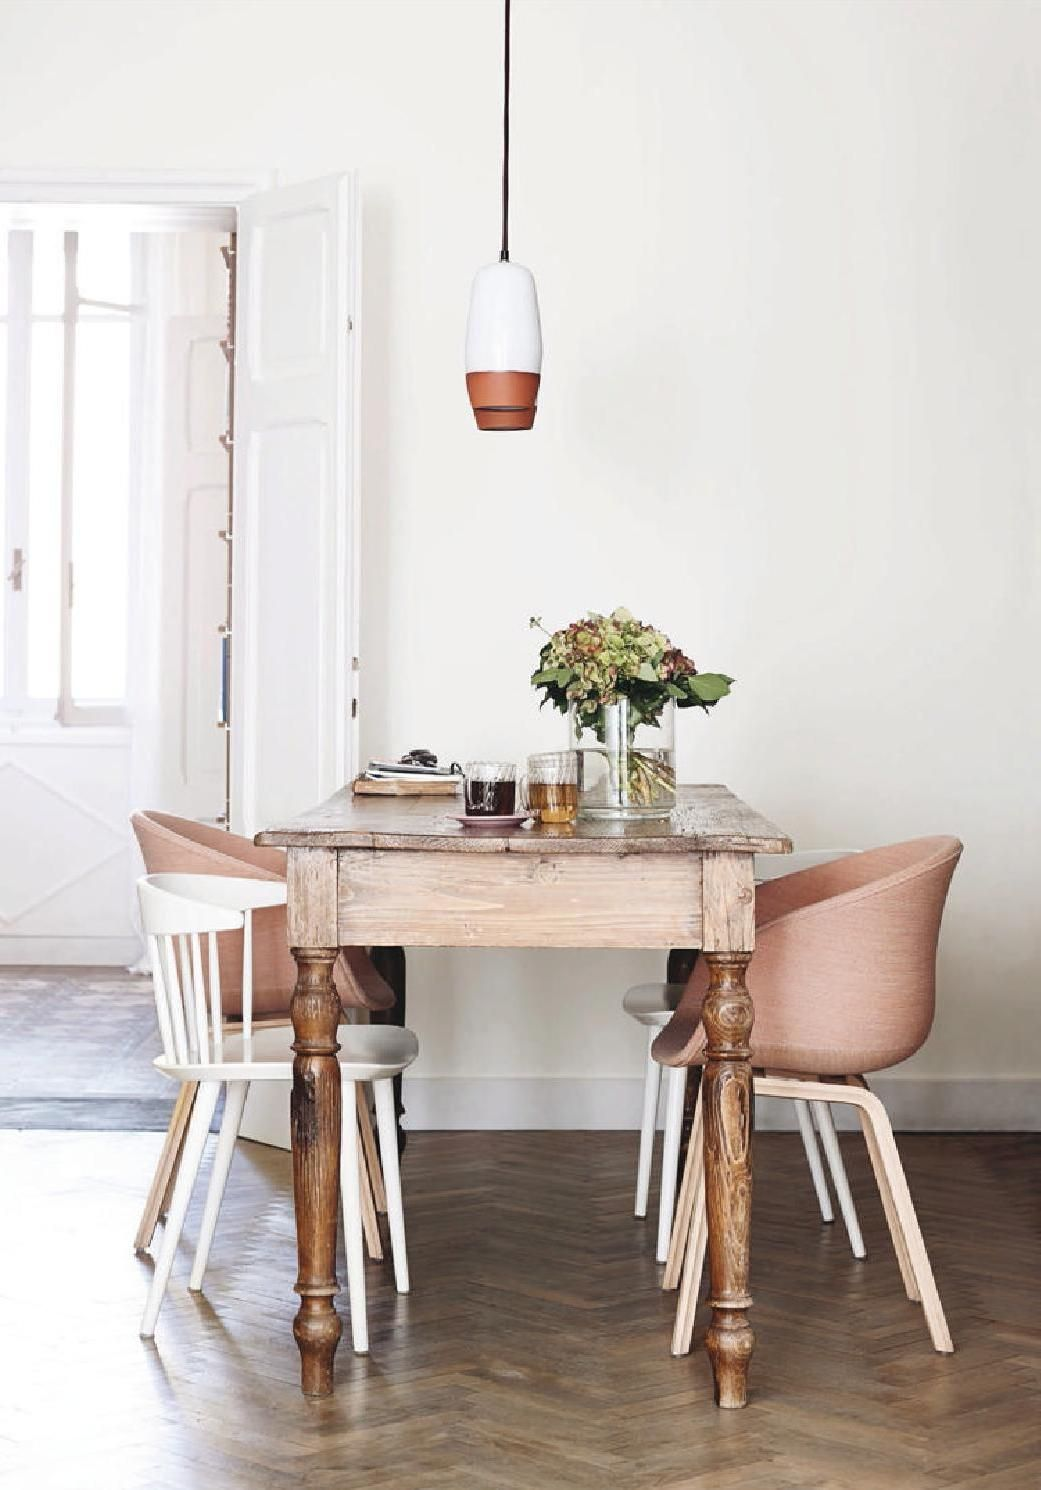 home - nude chairs, white and wood kitchen table | Interiors ...